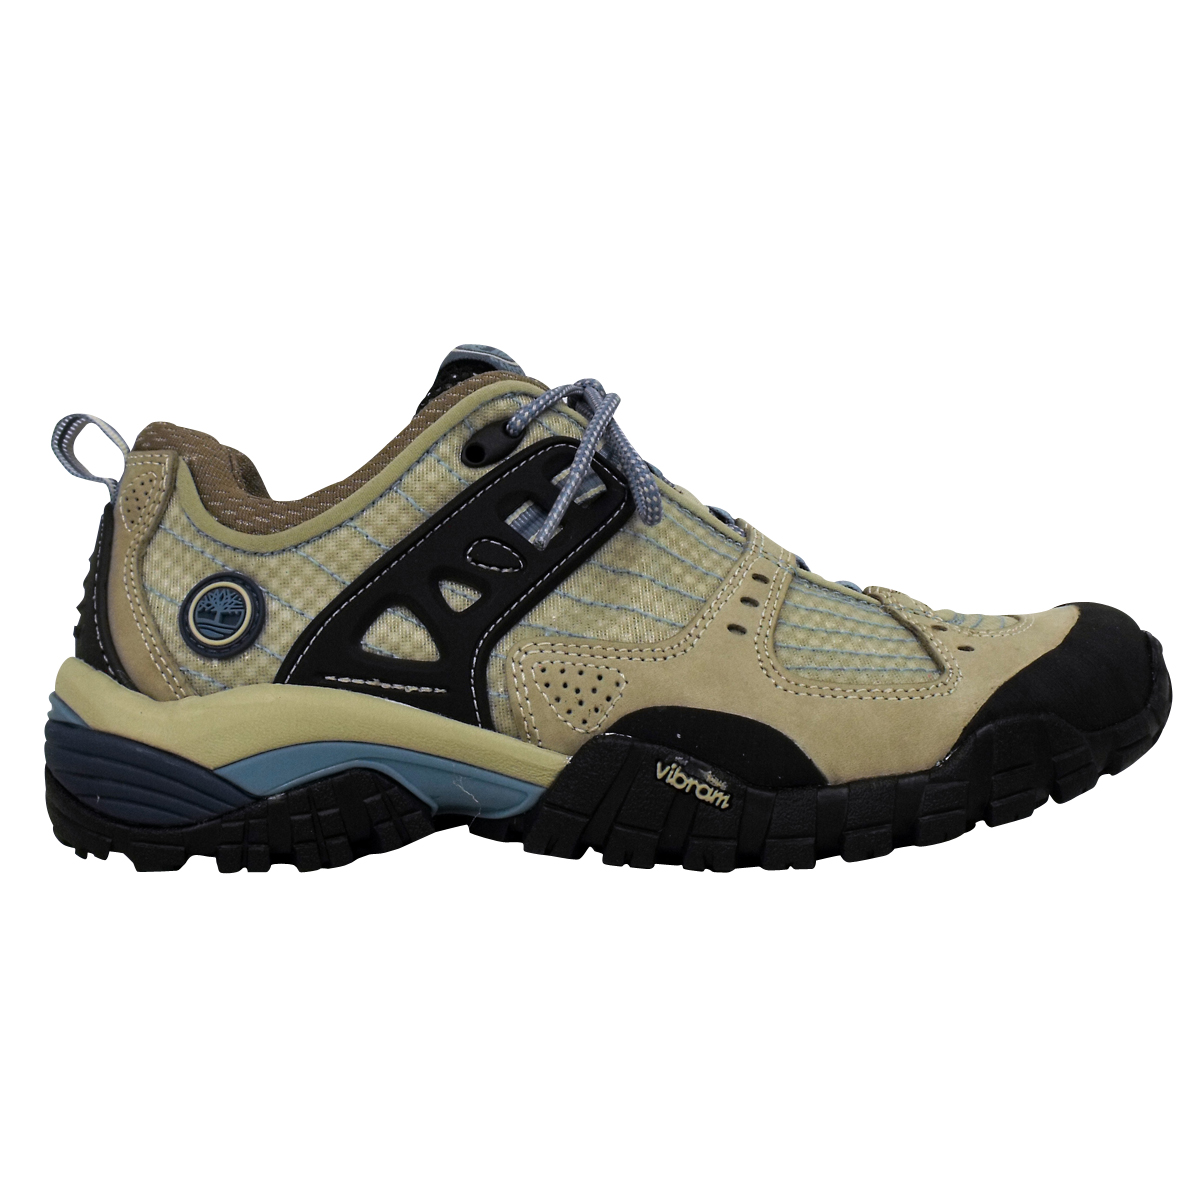 Popular For Hiking And Snowshoeing, These Are The Most Appropriate In The Mix You Can Cinch Them On Tight They Are The Best Boots Here For True Outdoors Use  Though Stylish Enough For Everyday Wear As Well